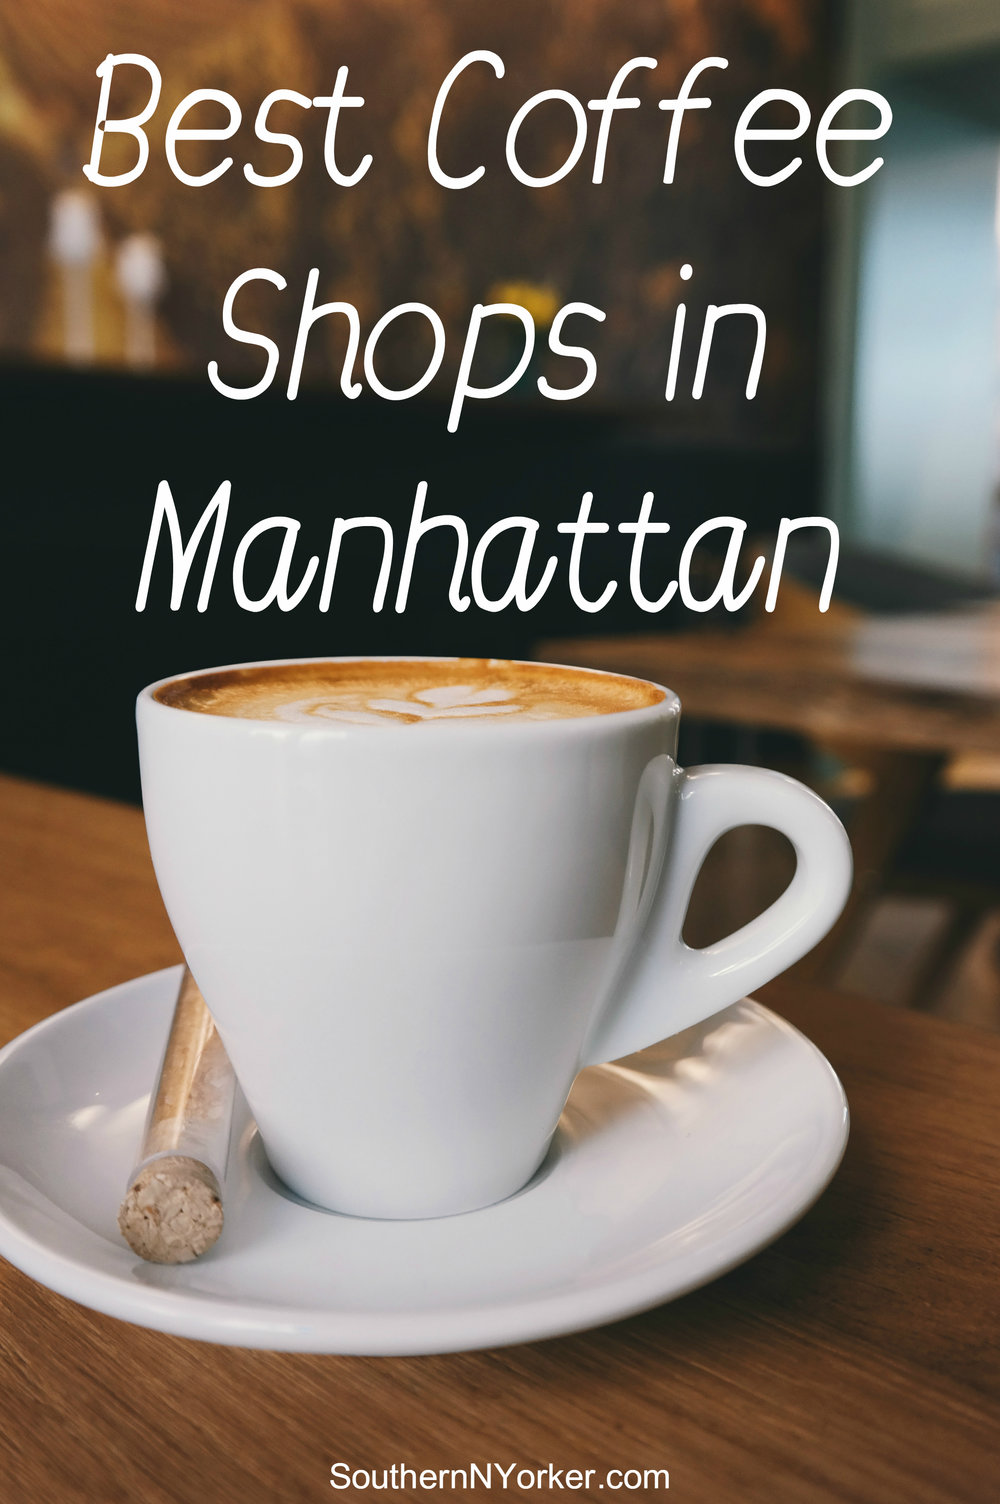 Best Coffee Shops in Manhattan